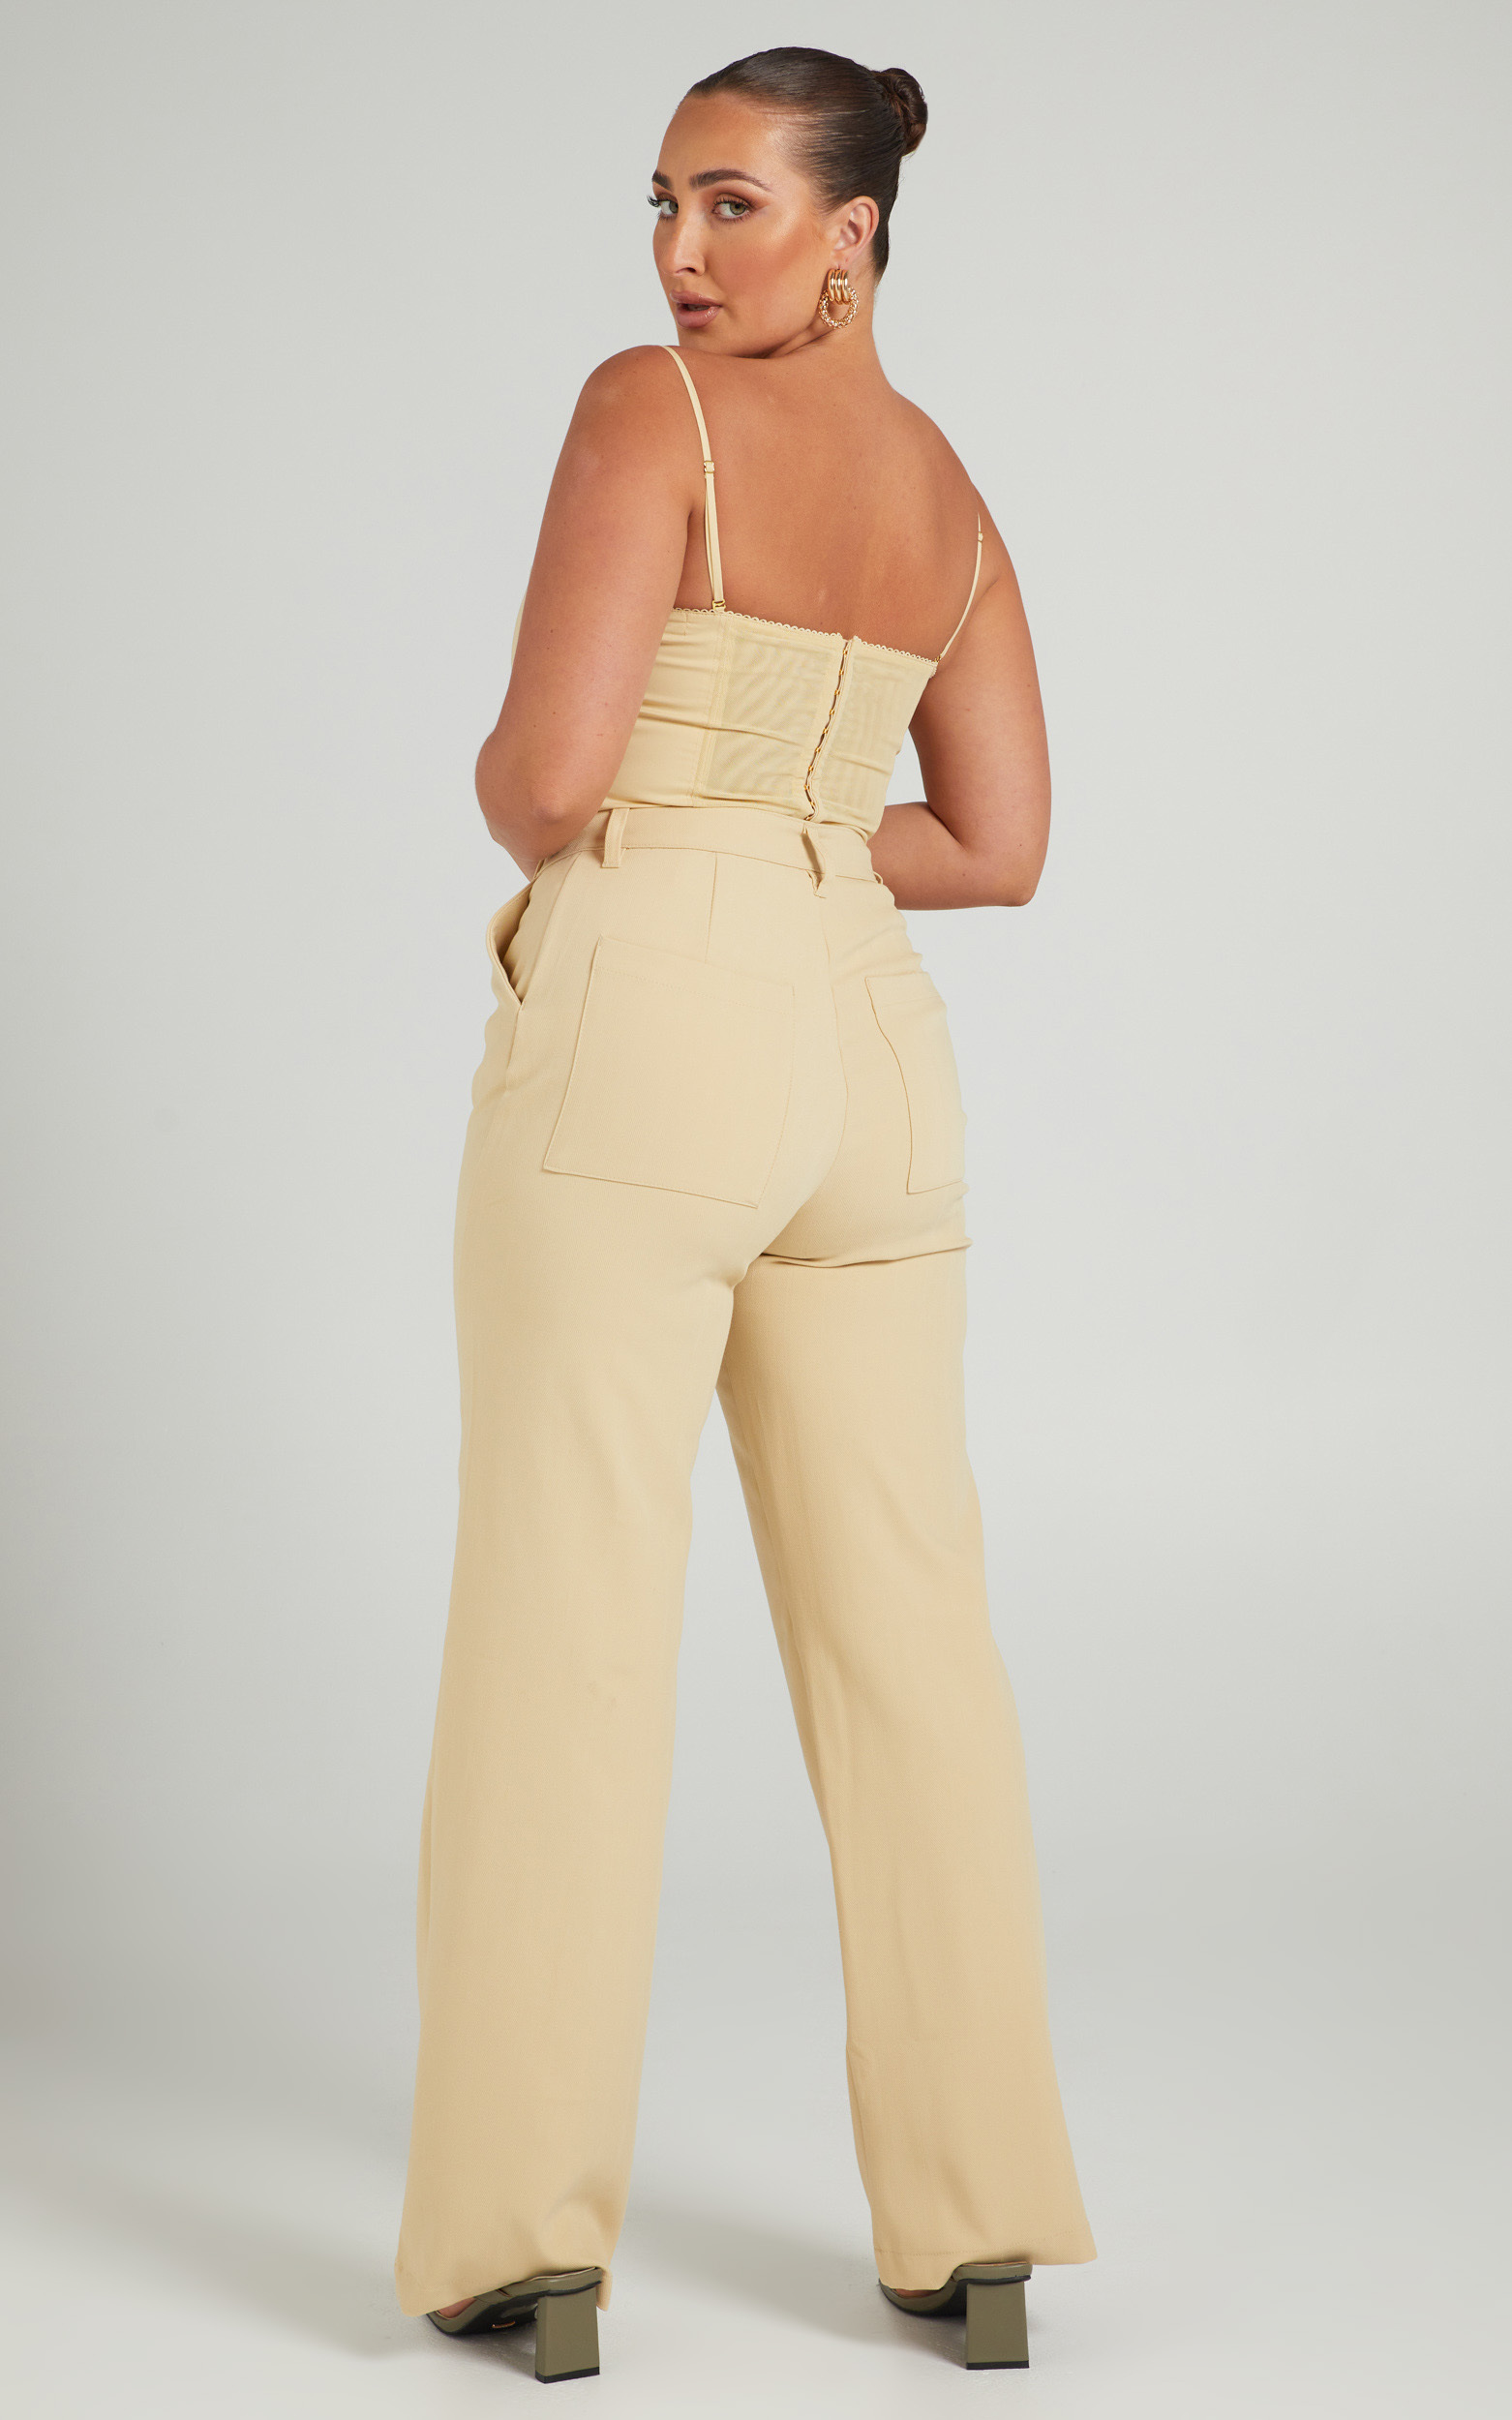 Danielle Bernstein - Classic Trouser in Taupe - 06, BRN1, hi-res image number null